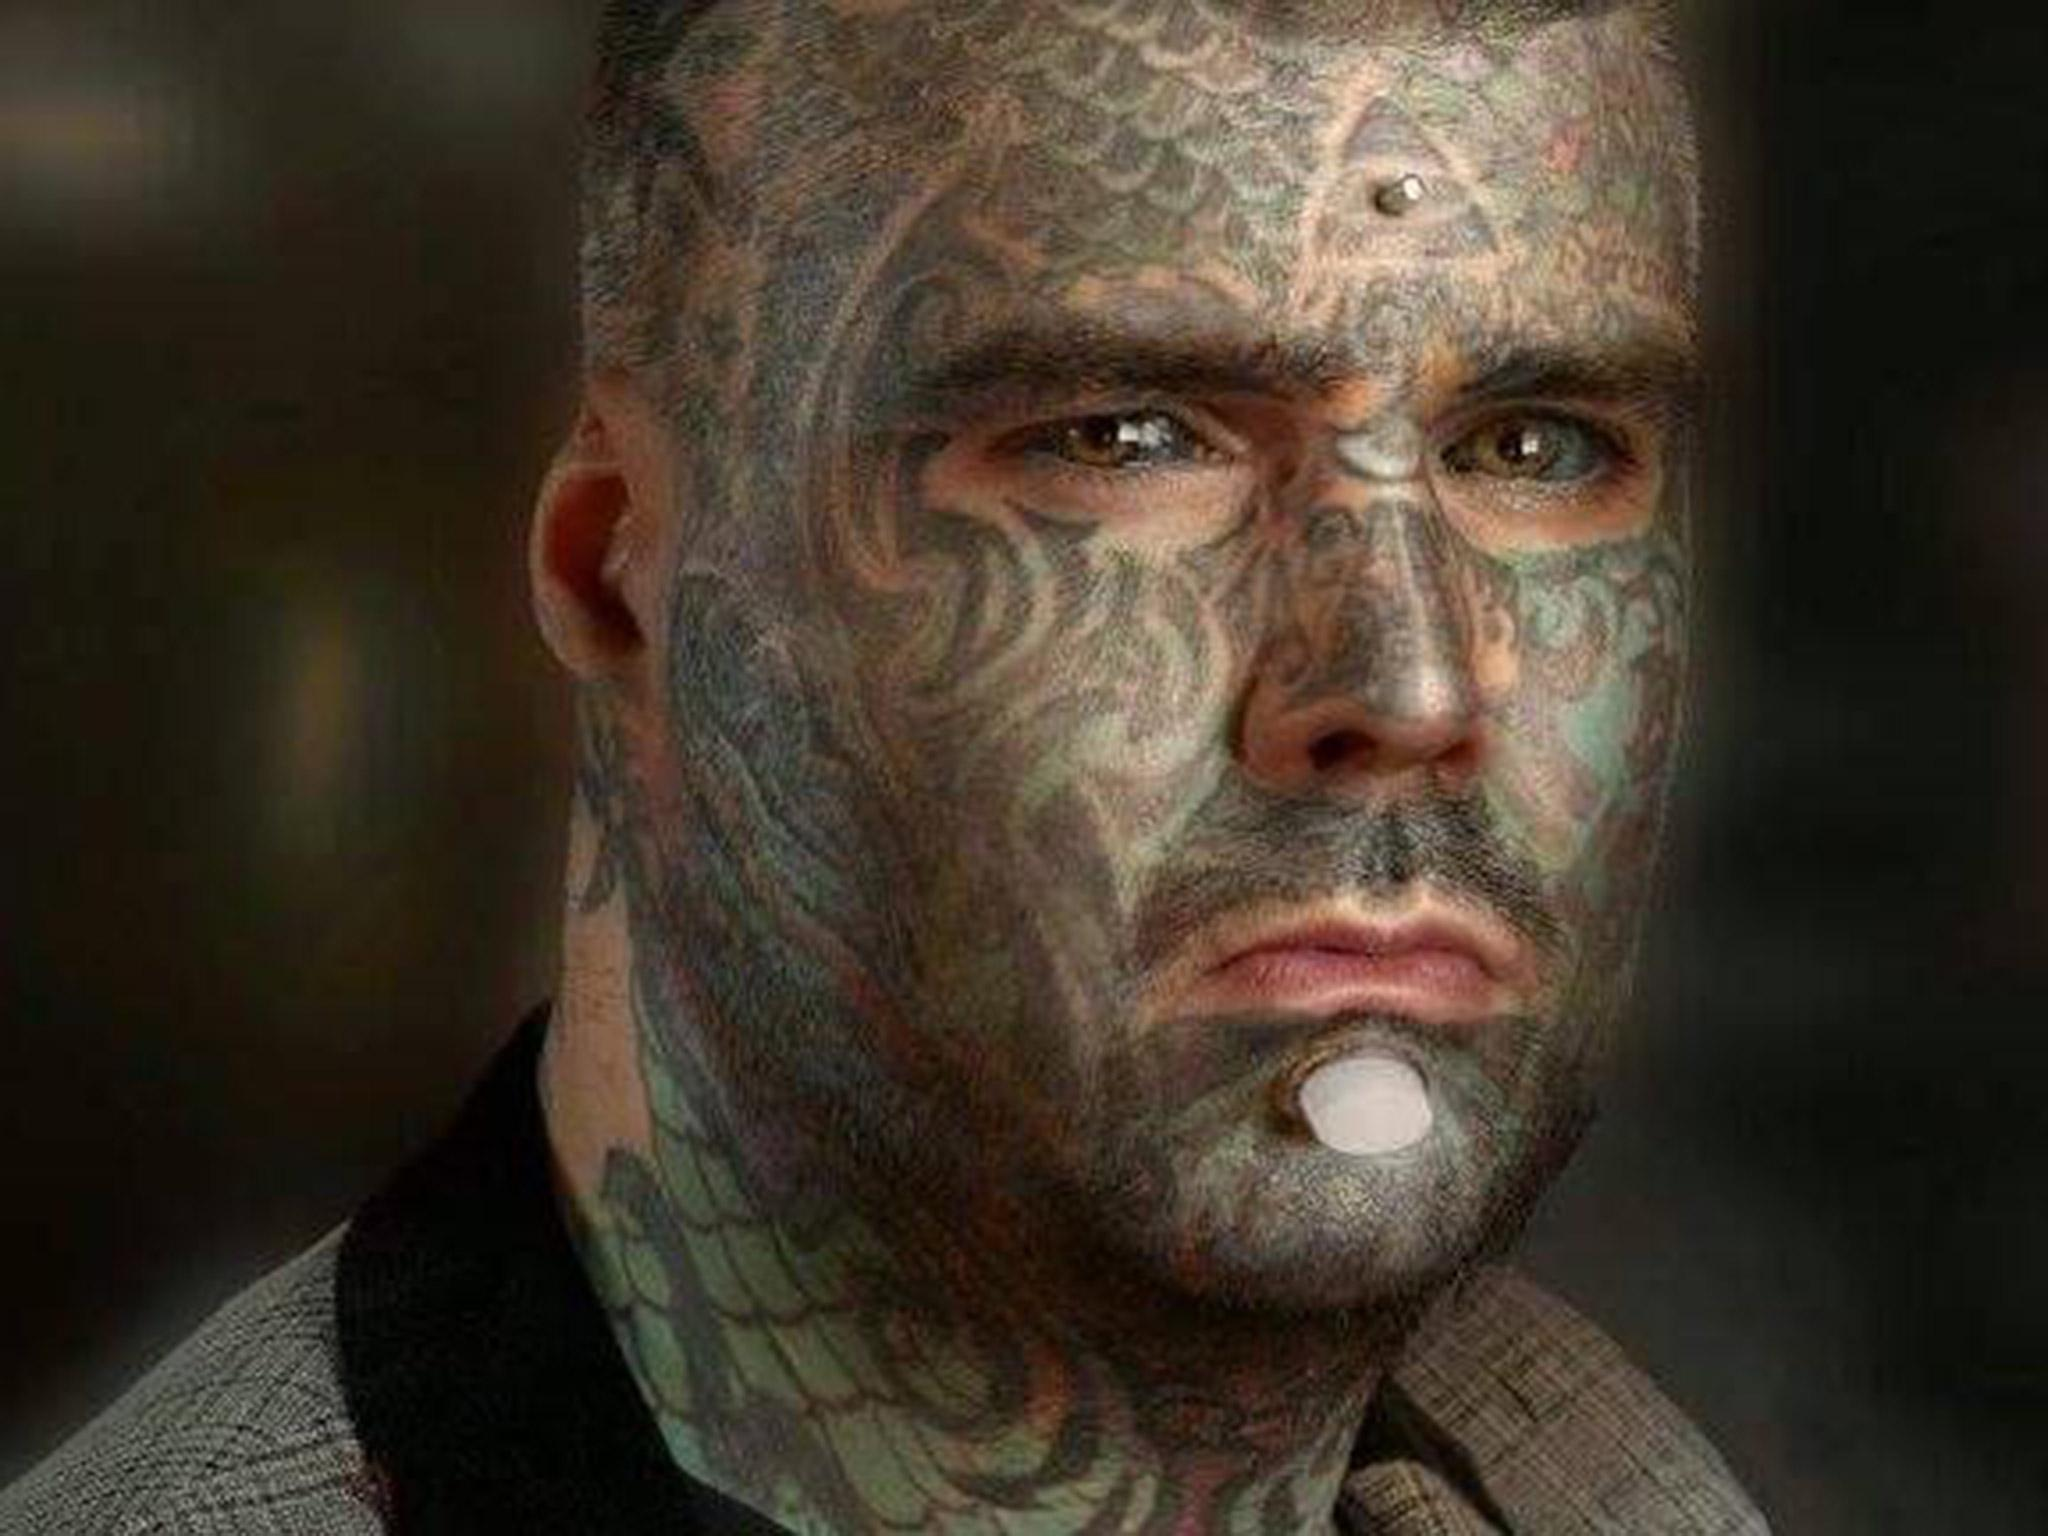 Body Art Uk S Most Tattoed Man Who Dyed His Eyes Calls For Equal Treatment Of People With Modifications The Independent The Independent